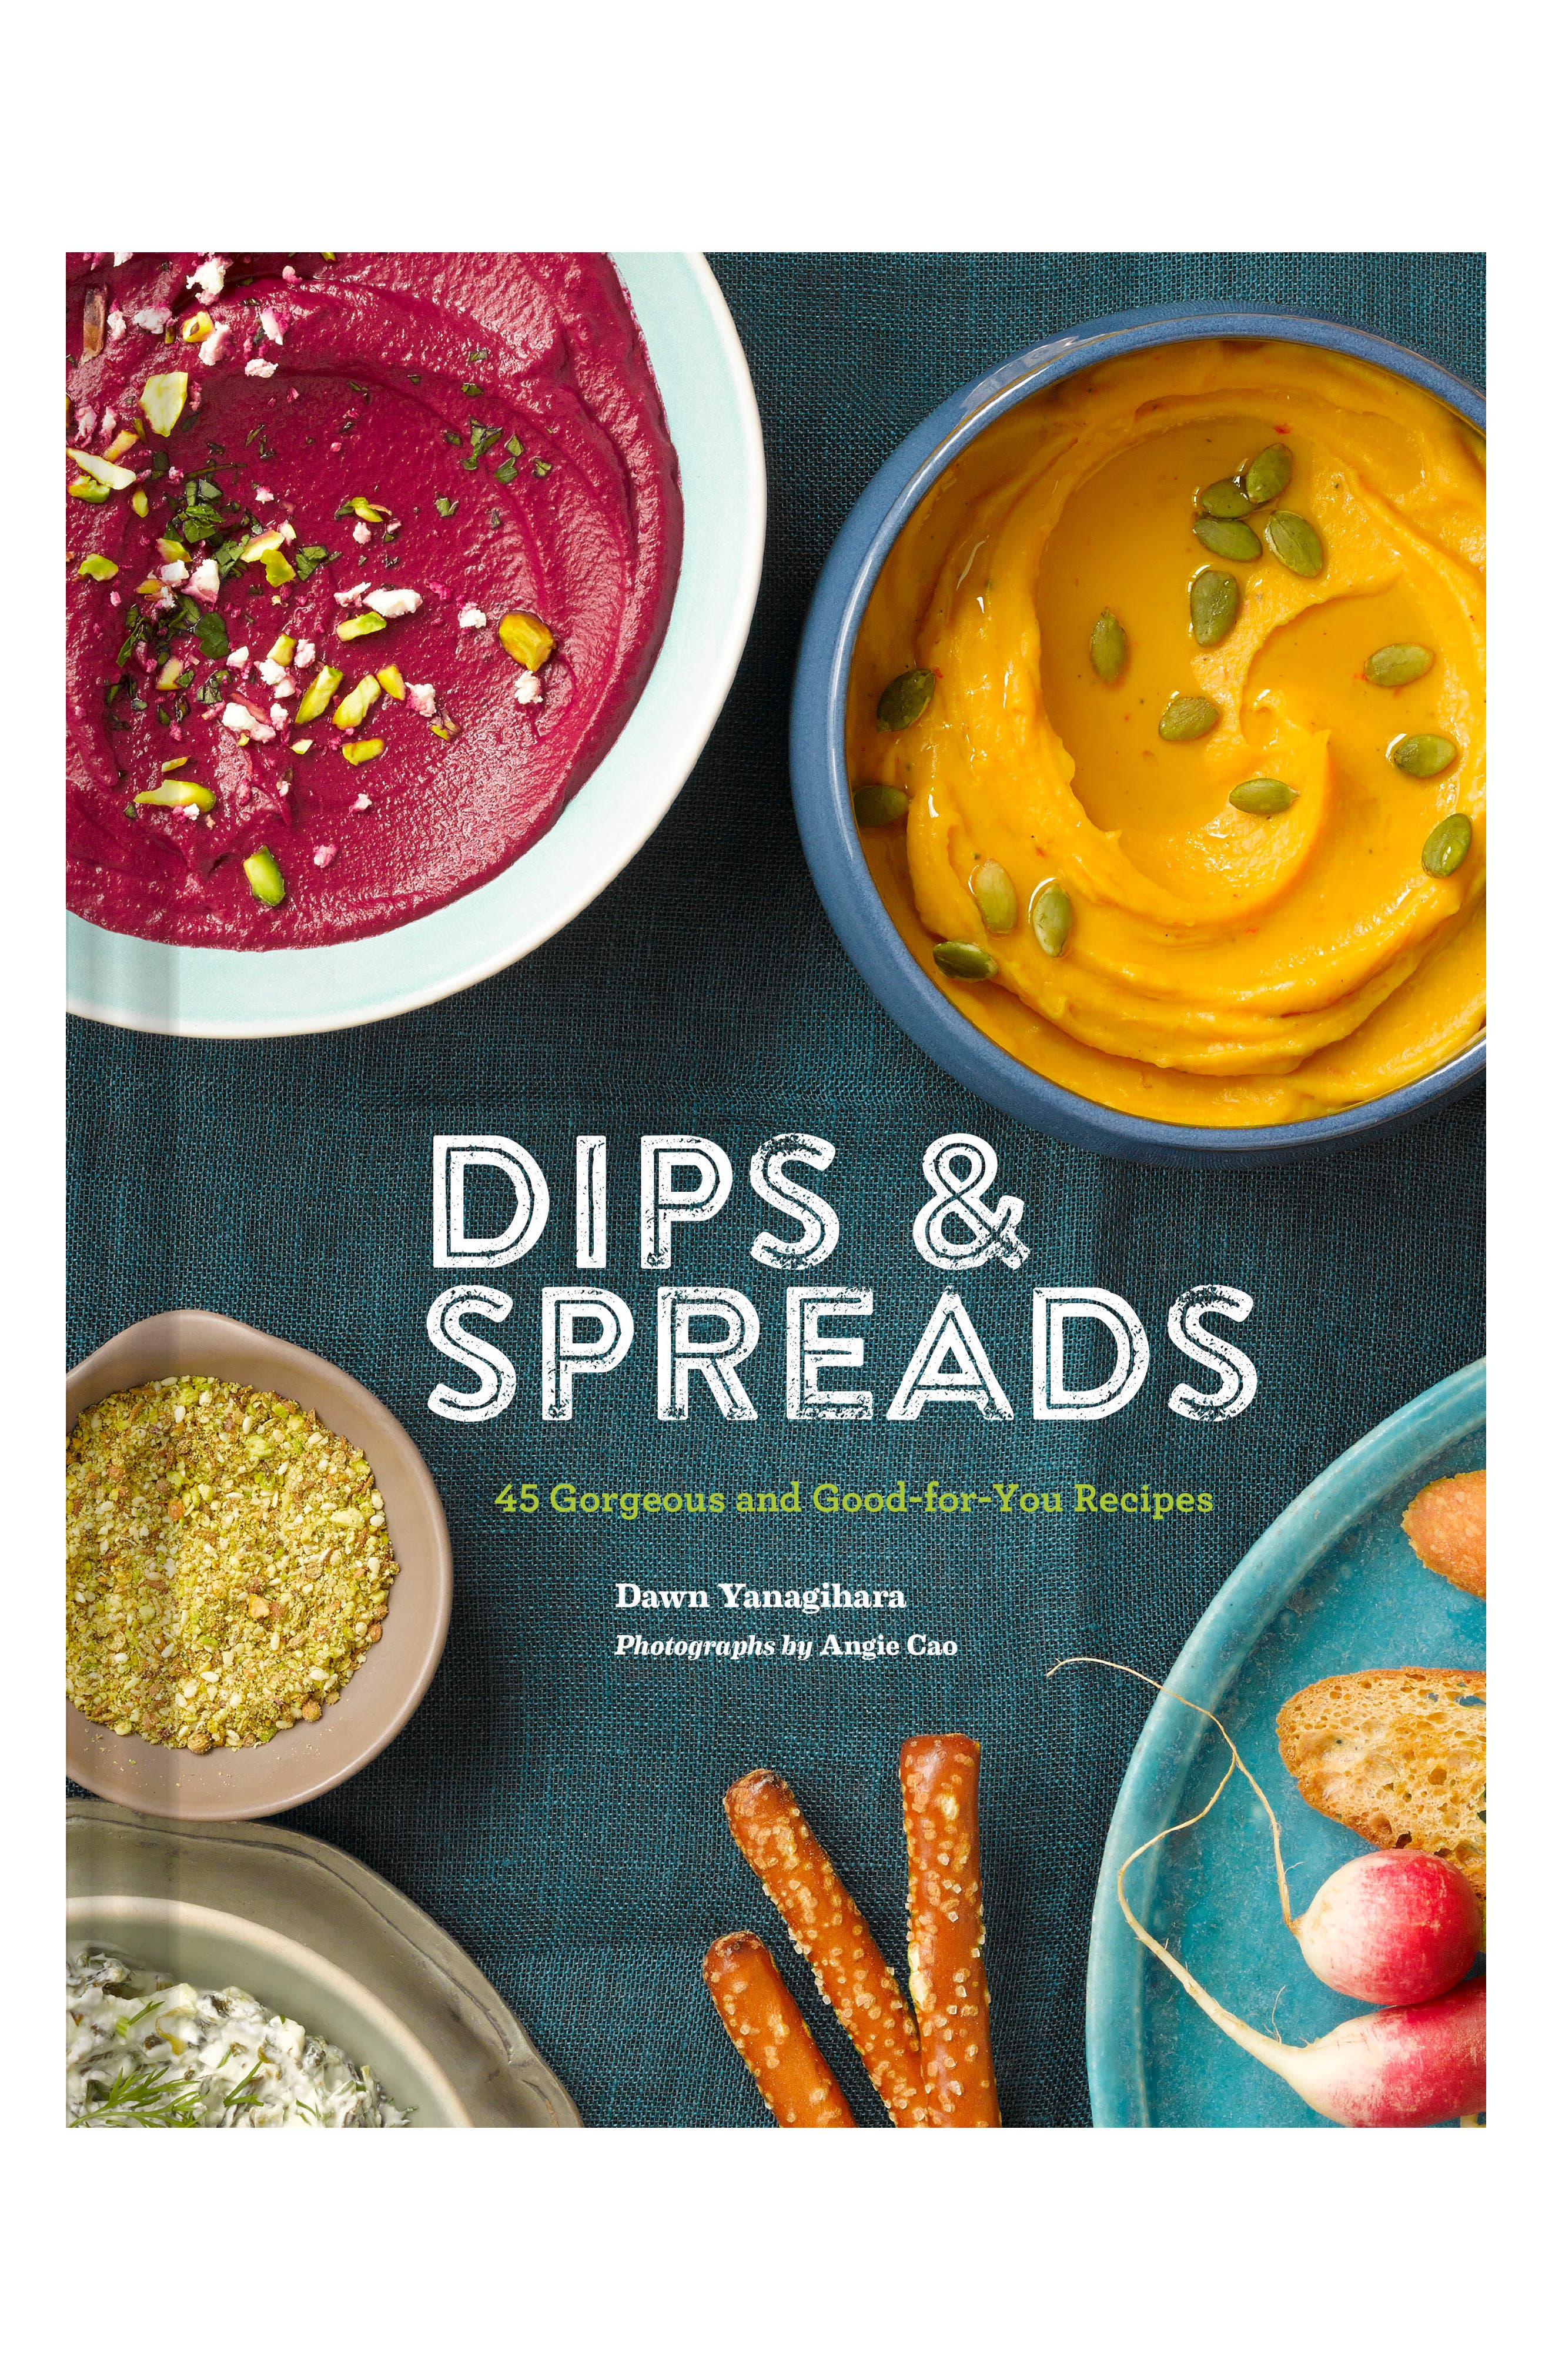 Dips & Spreads: 45 Gorgeous and Good-for-You Recipes Book,                             Main thumbnail 1, color,                             020